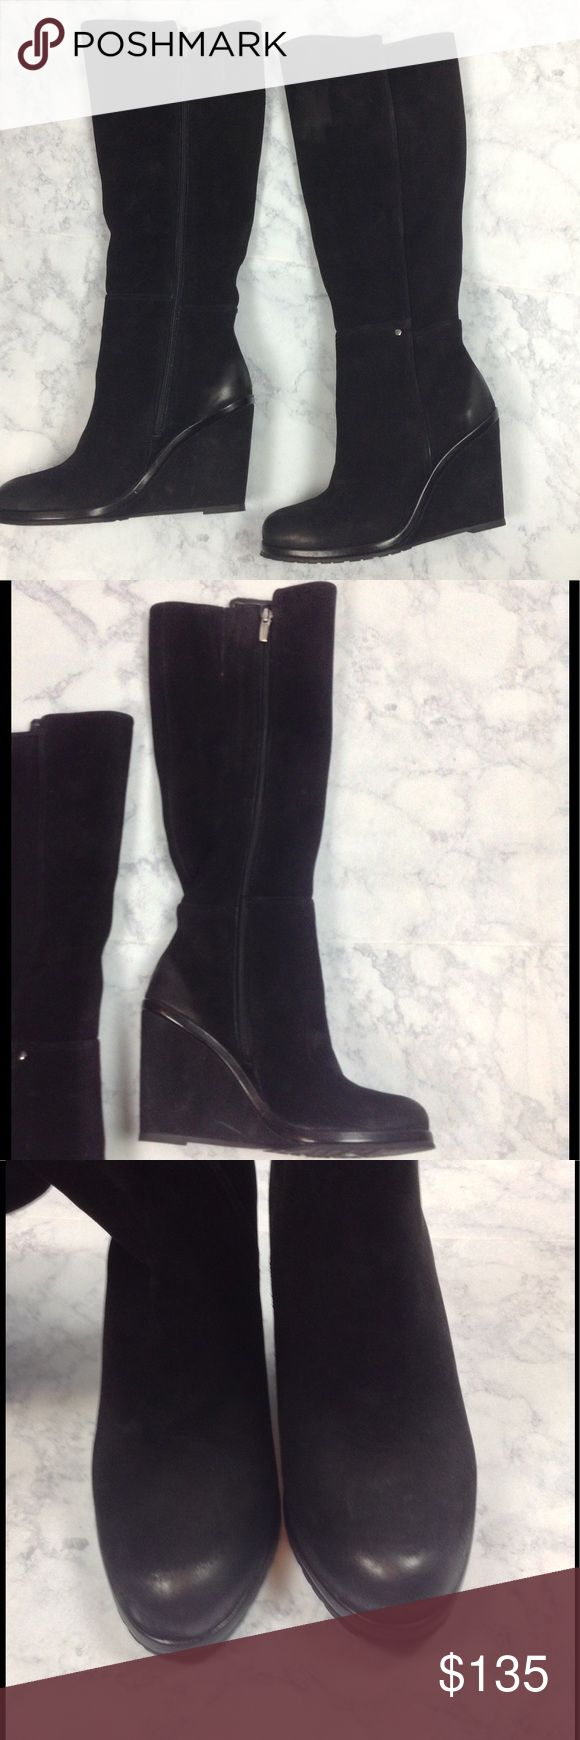 "Vince Camuto Justine Knee High Wedge Boots- NWT Brand new black suede wedge knee high boots. Full length zip closure with elastic on calf area for extra comfort.  Rounded toe. Padded insole. Heel height: 4"" Shaft height: 17.5"". Circumference: 15.5"". Size: 8.5. Original box not available. No trades Vince Camuto Shoes Heeled Boots"